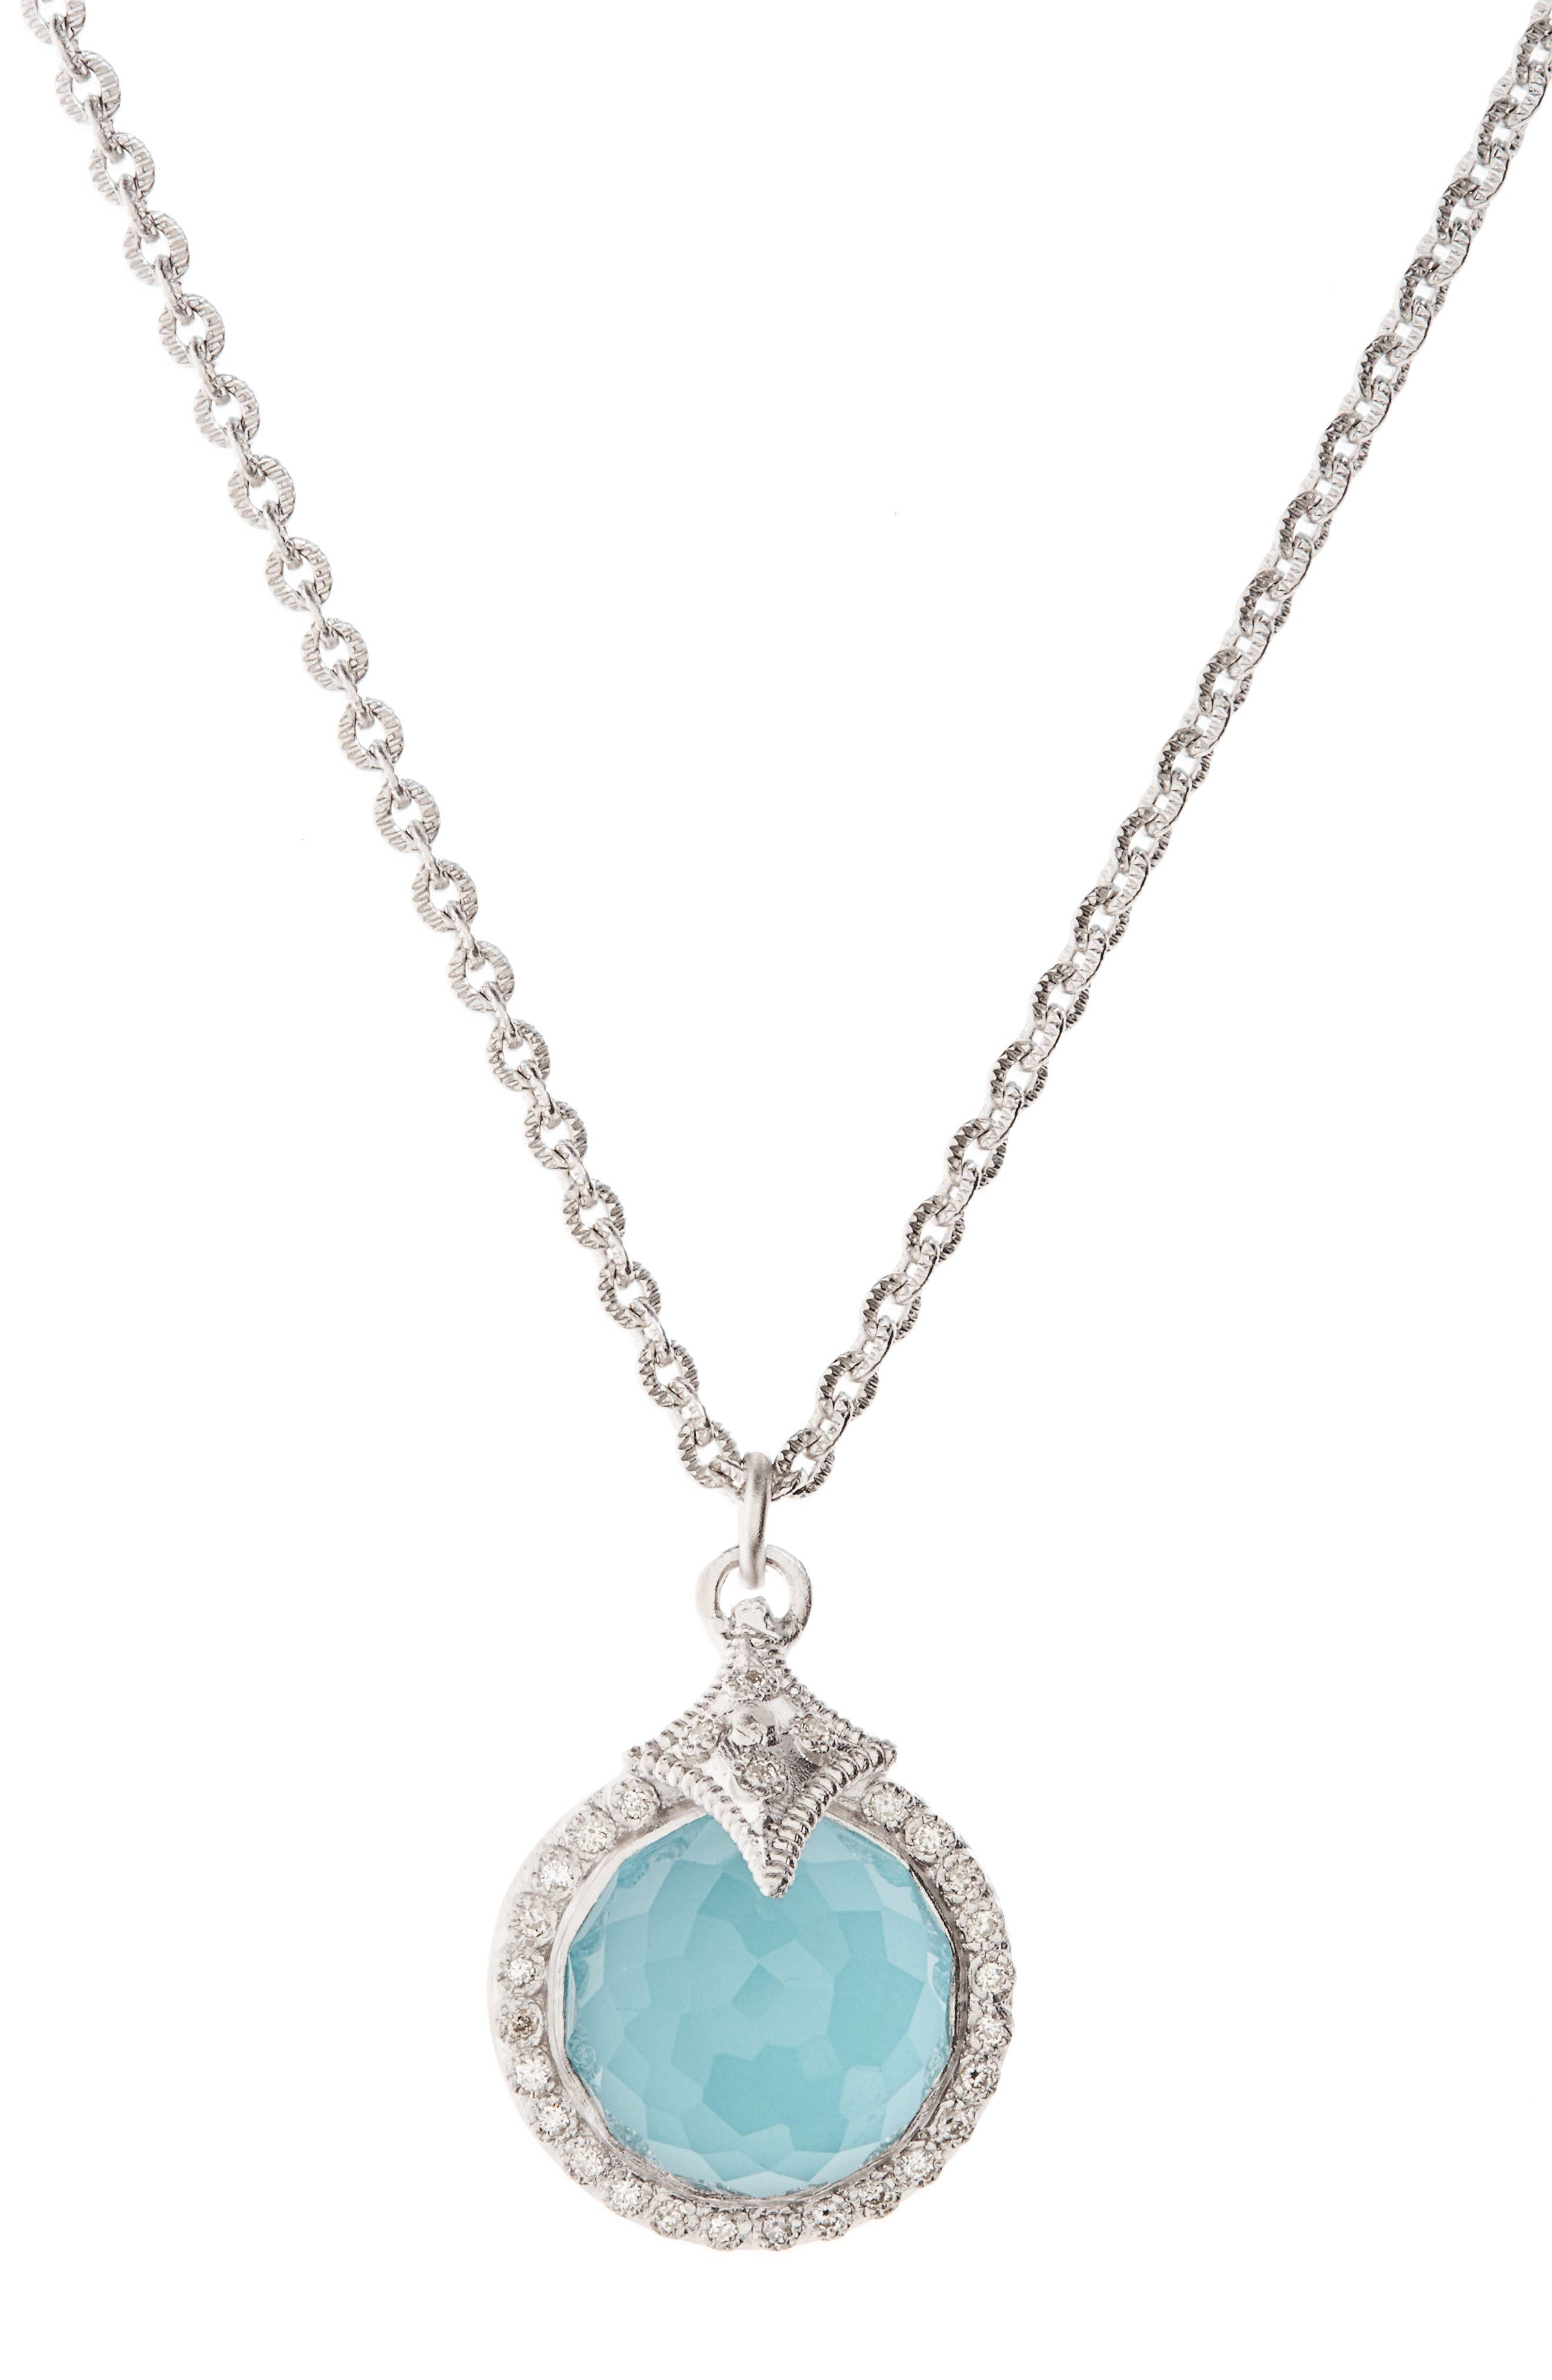 New World Turquoise Pendant Necklace,                         Main,                         color, Silver